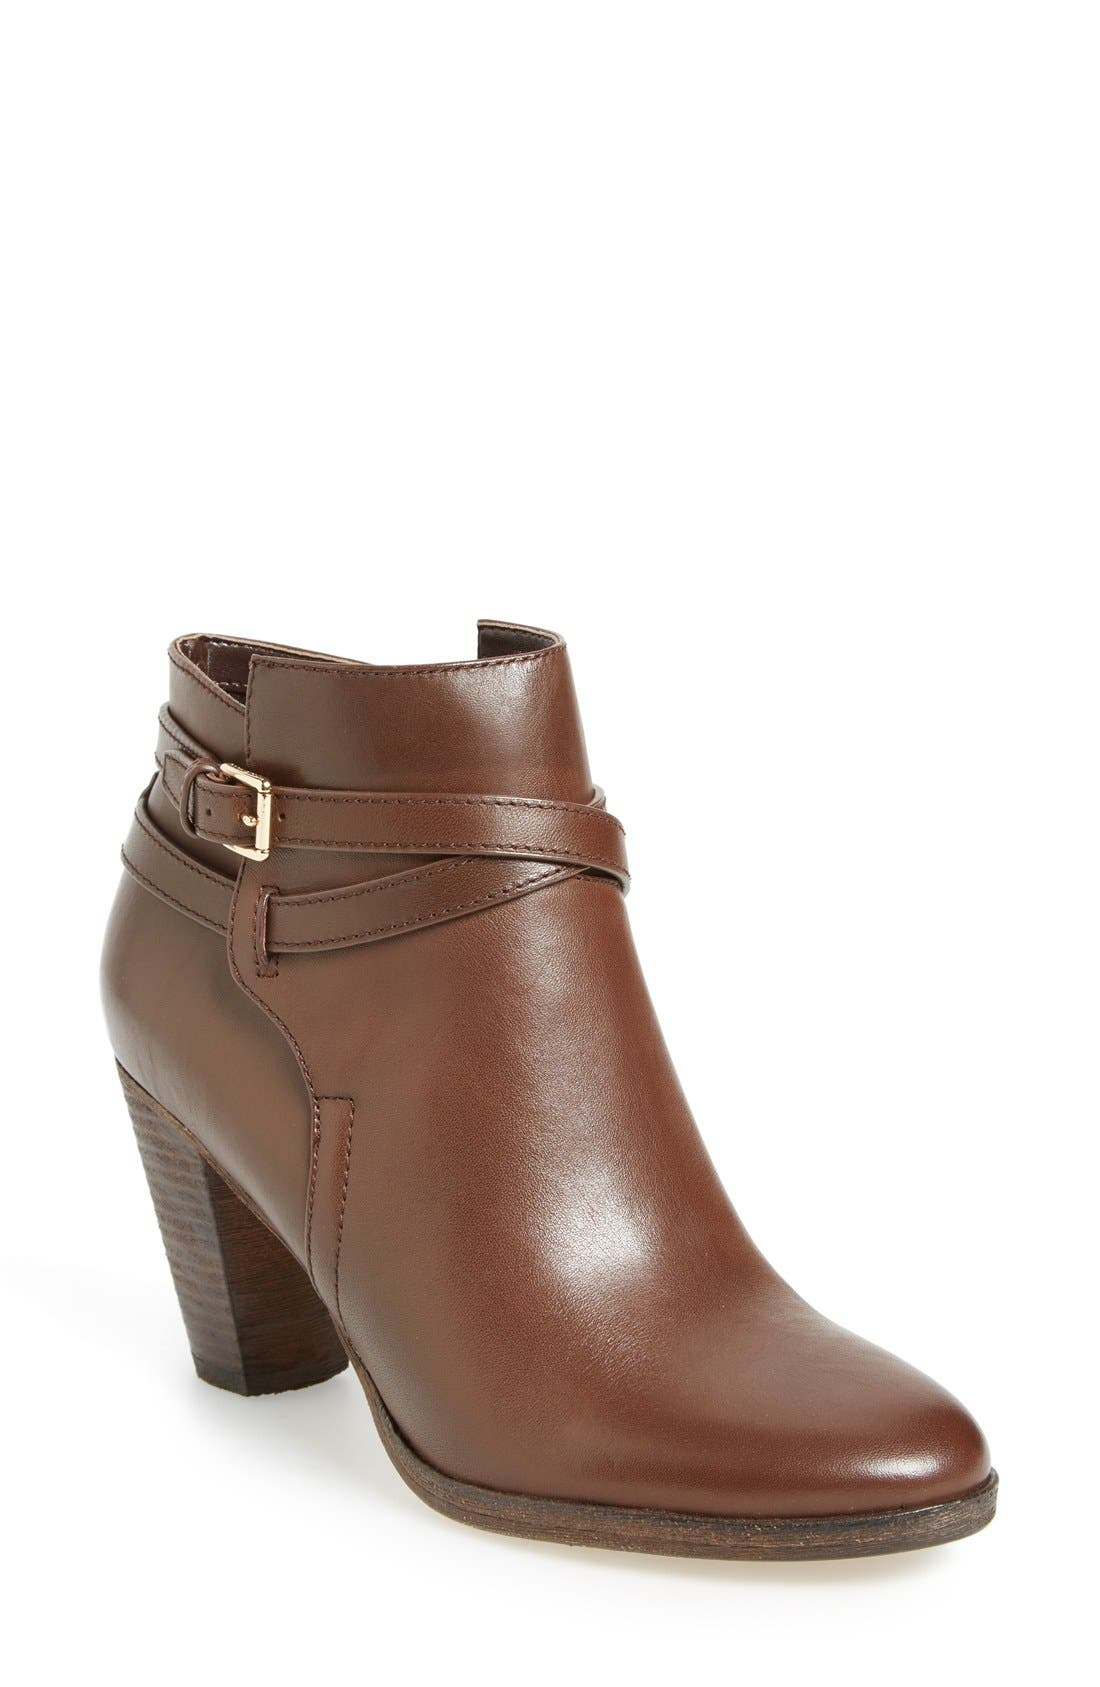 'Hayes' Block Heel Bootie,                         Main,                         color, Chestnut Leather